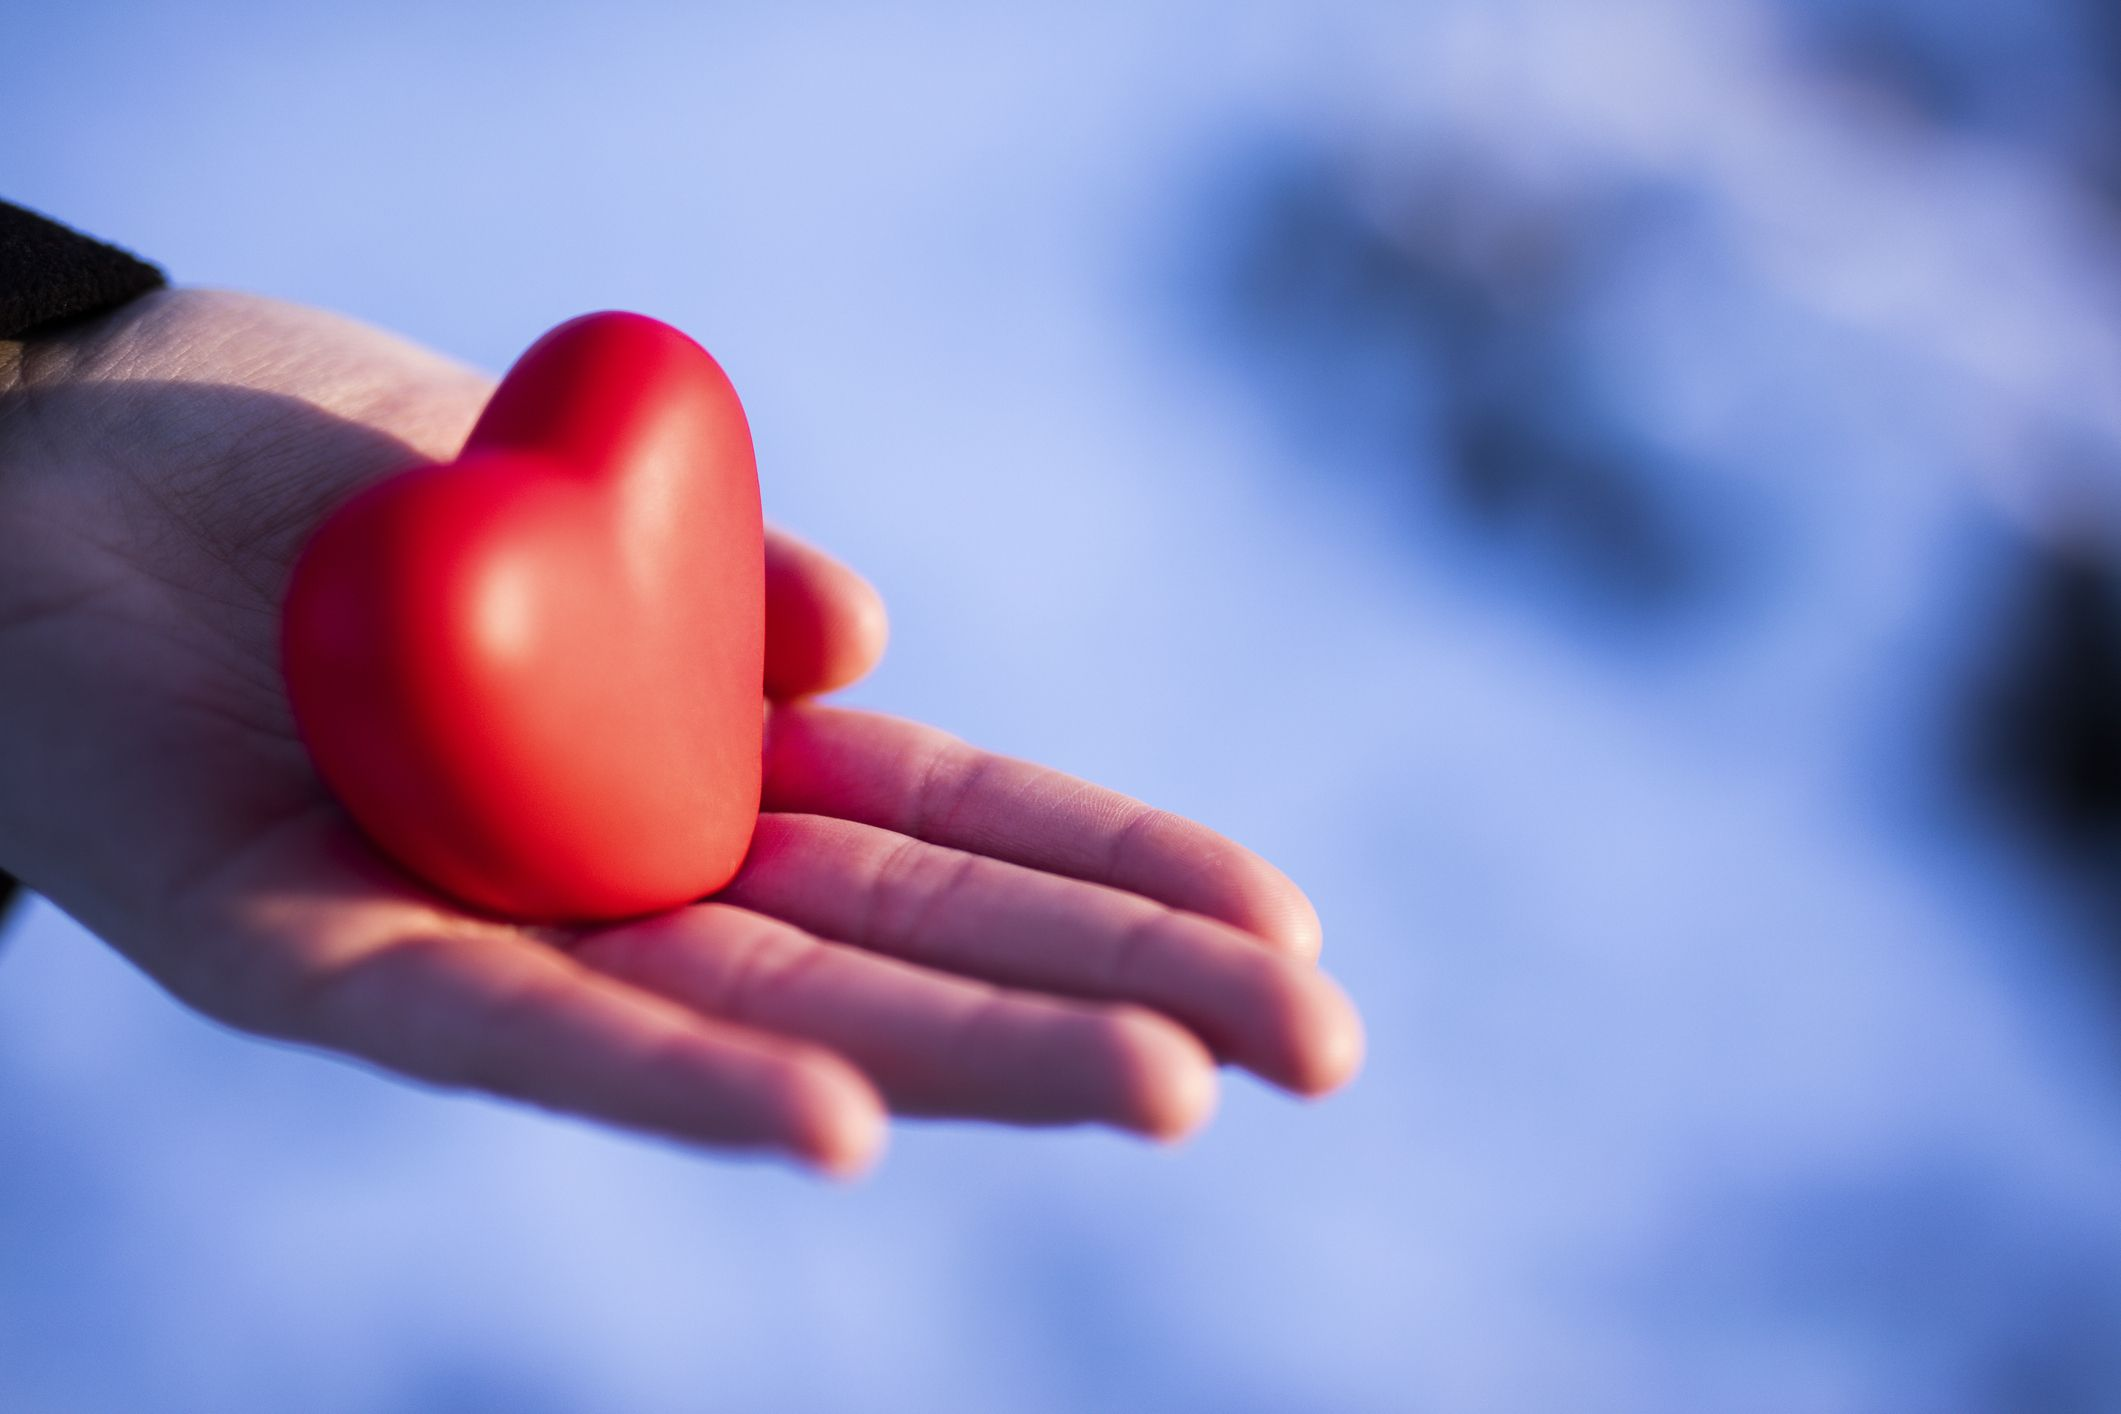 Compassionate empathy extends our heart to uplift others